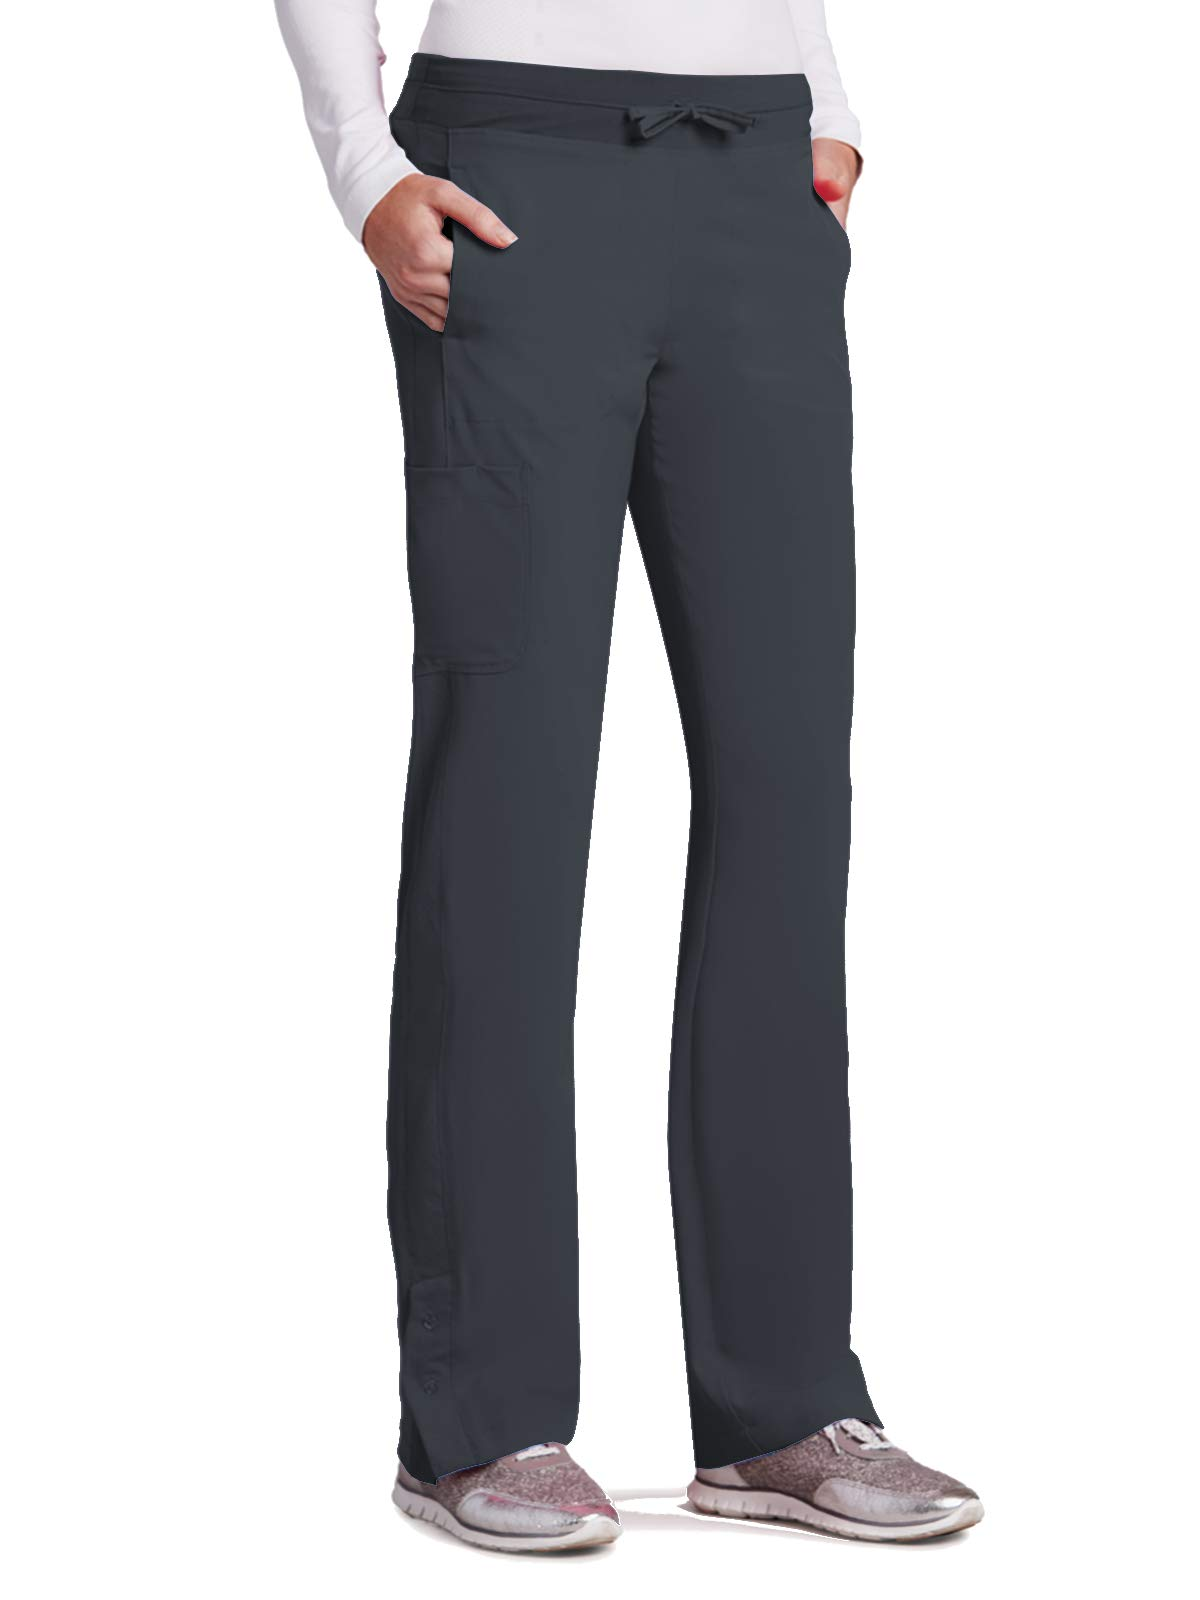 Barco One 5205 Cargo Track Pant Steel S